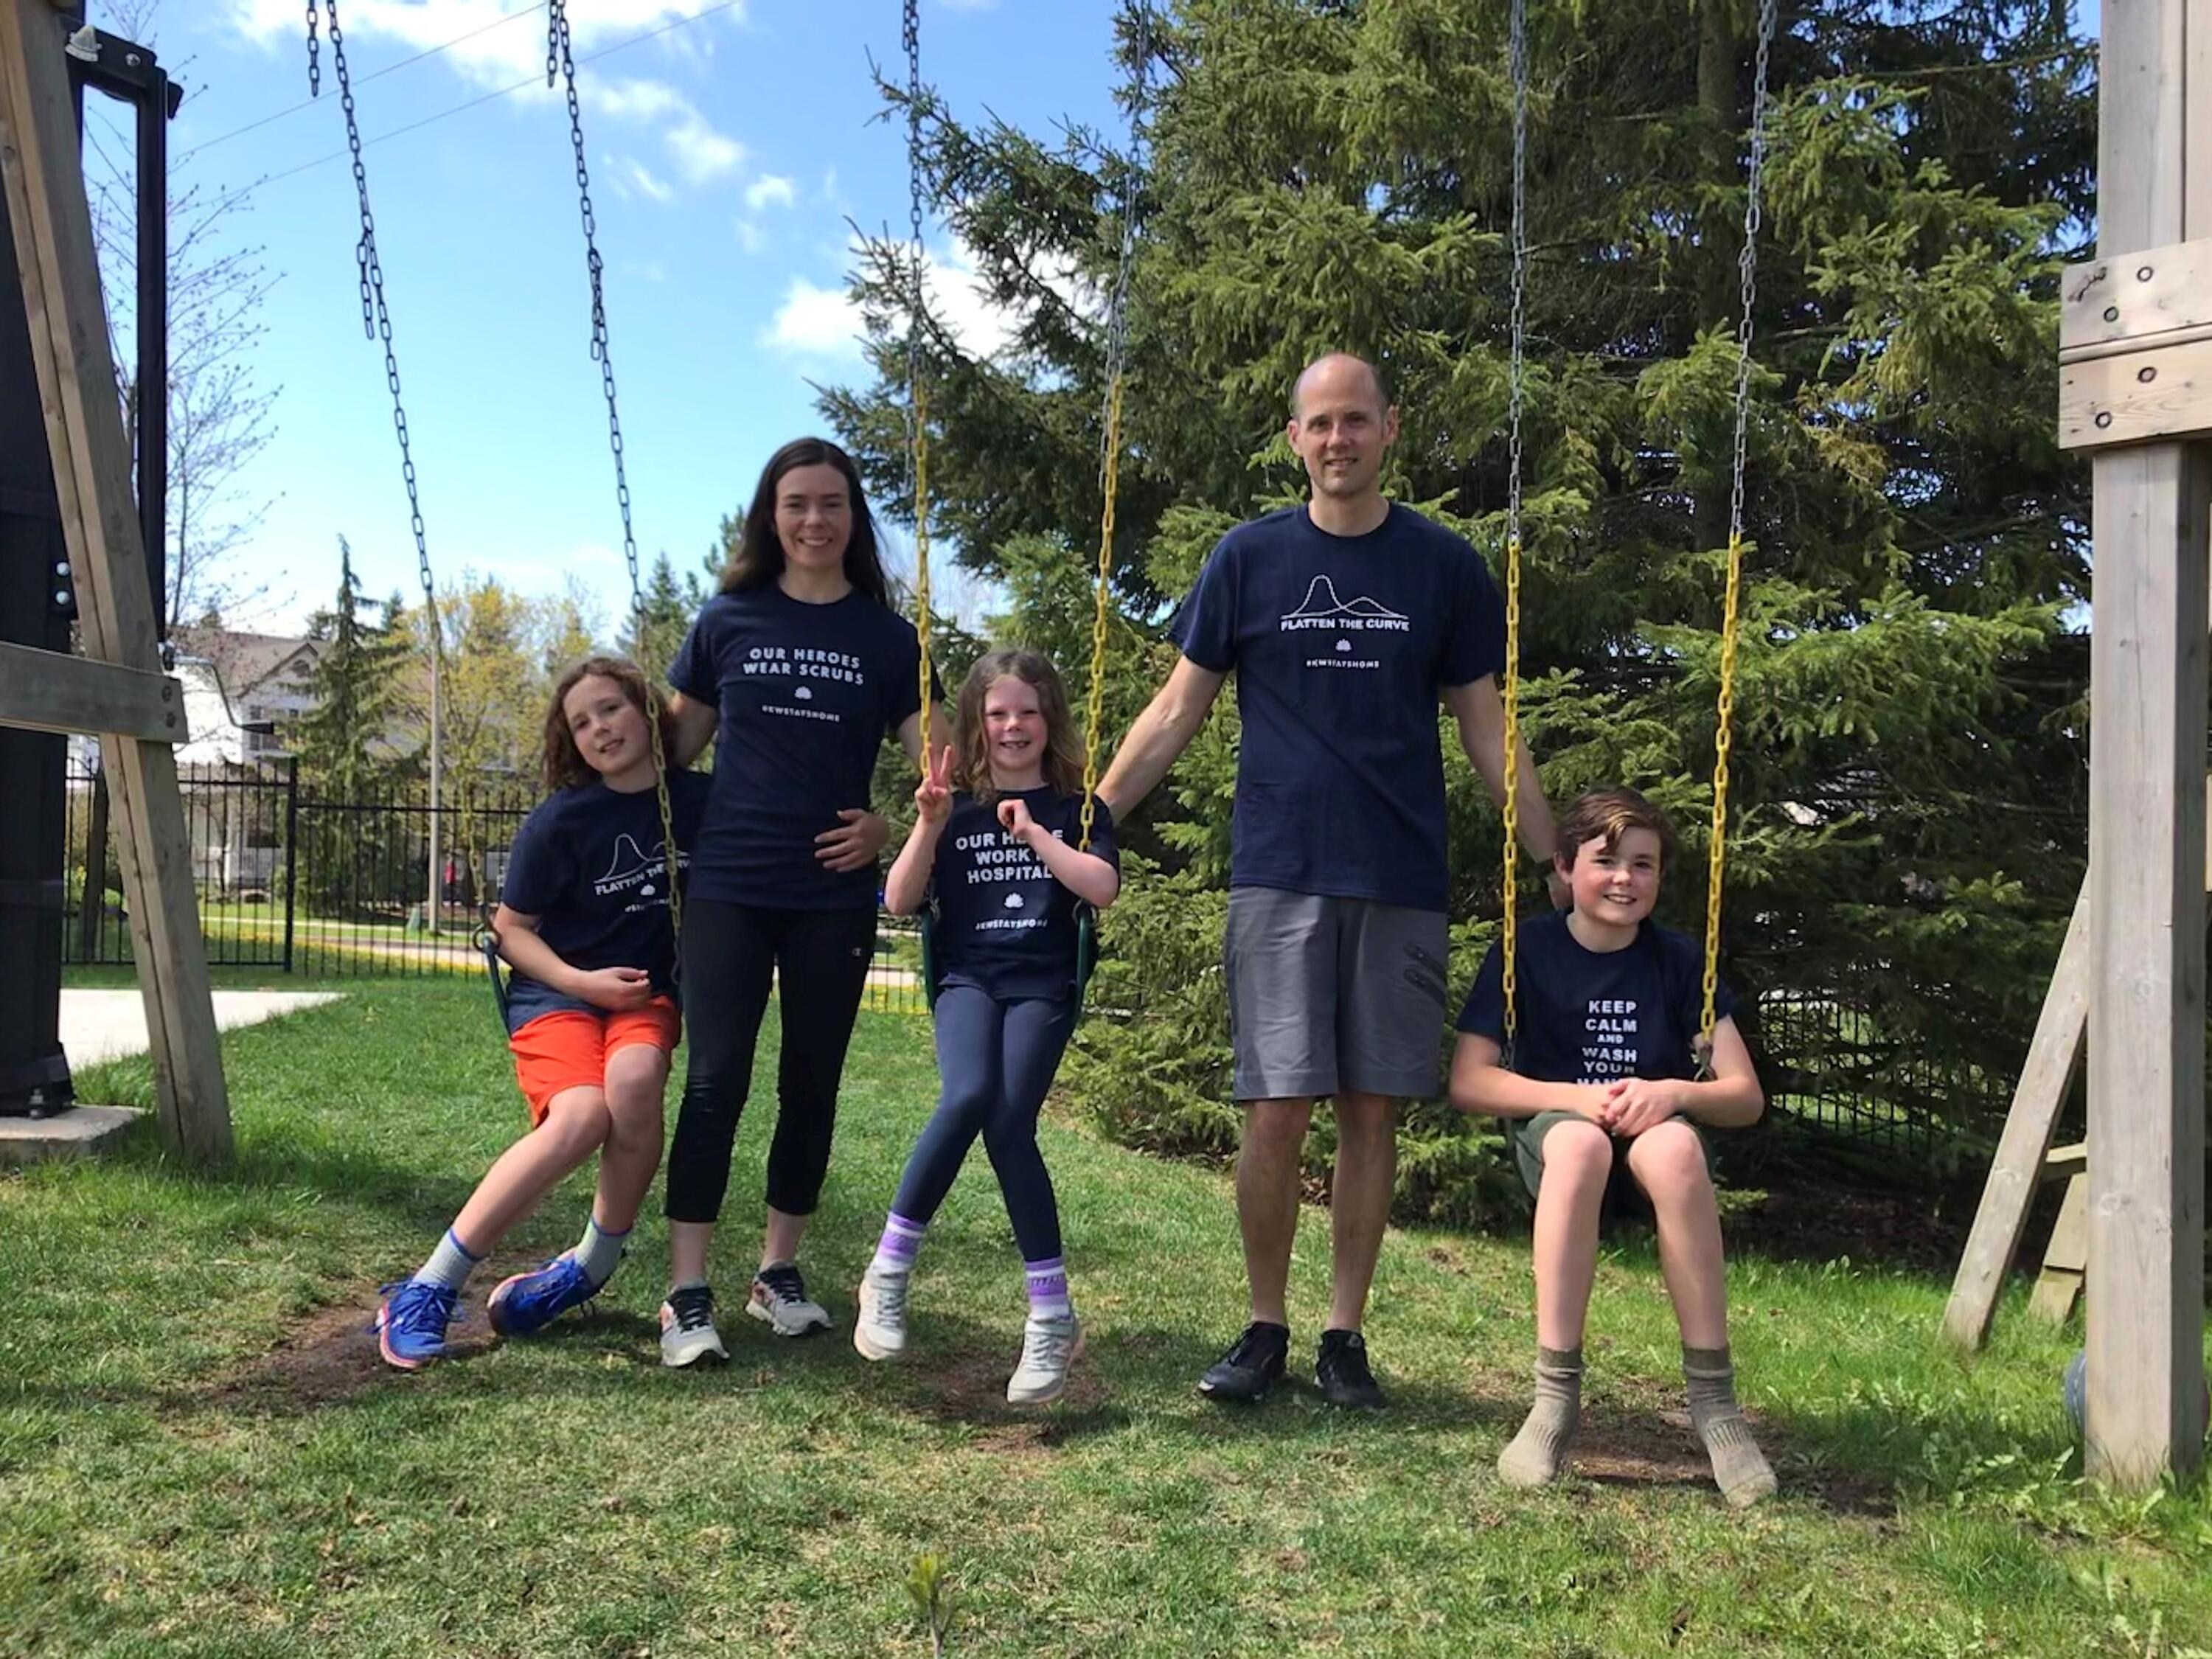 Jay Green stands at a swing set with his wife and two kids. They wear black shirts that promote flattening the COVID-19 curve.